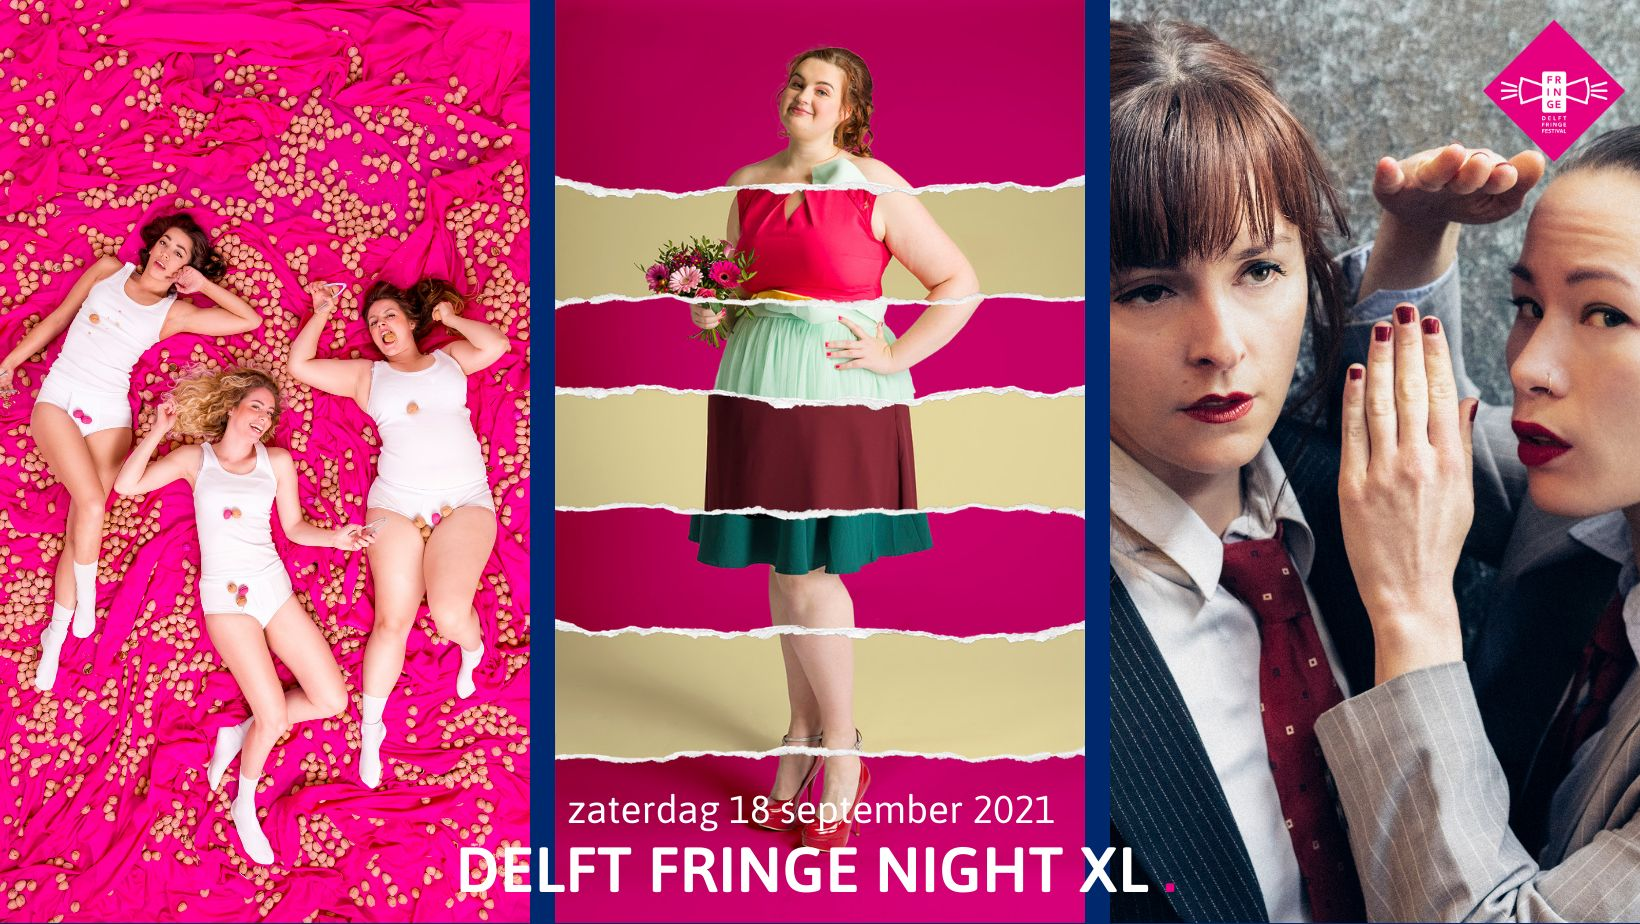 Save the date: Delft Fringe Night XL.